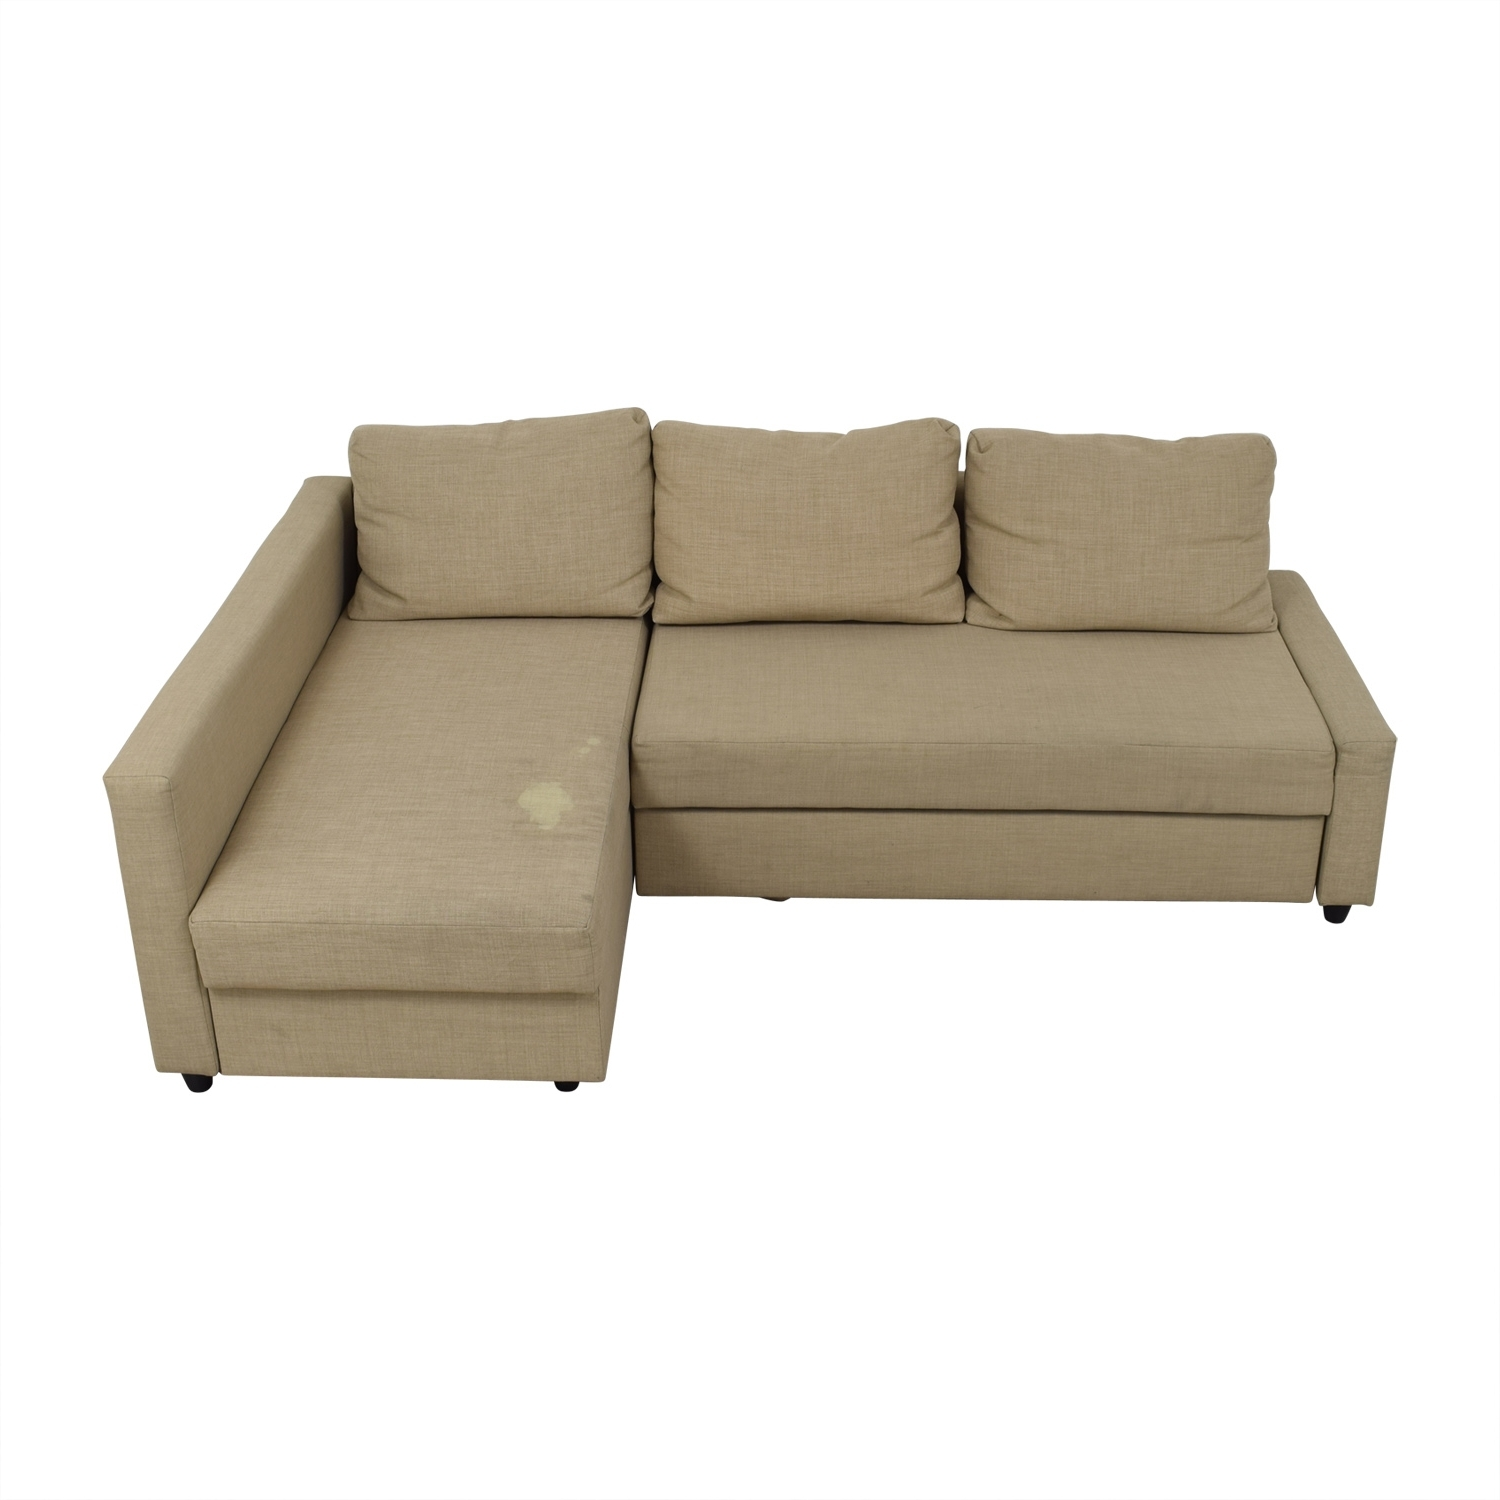 Sectionals: Used Sectionals For Sale With Regard To Most Recent Used Sectional Sofas (View 9 of 15)